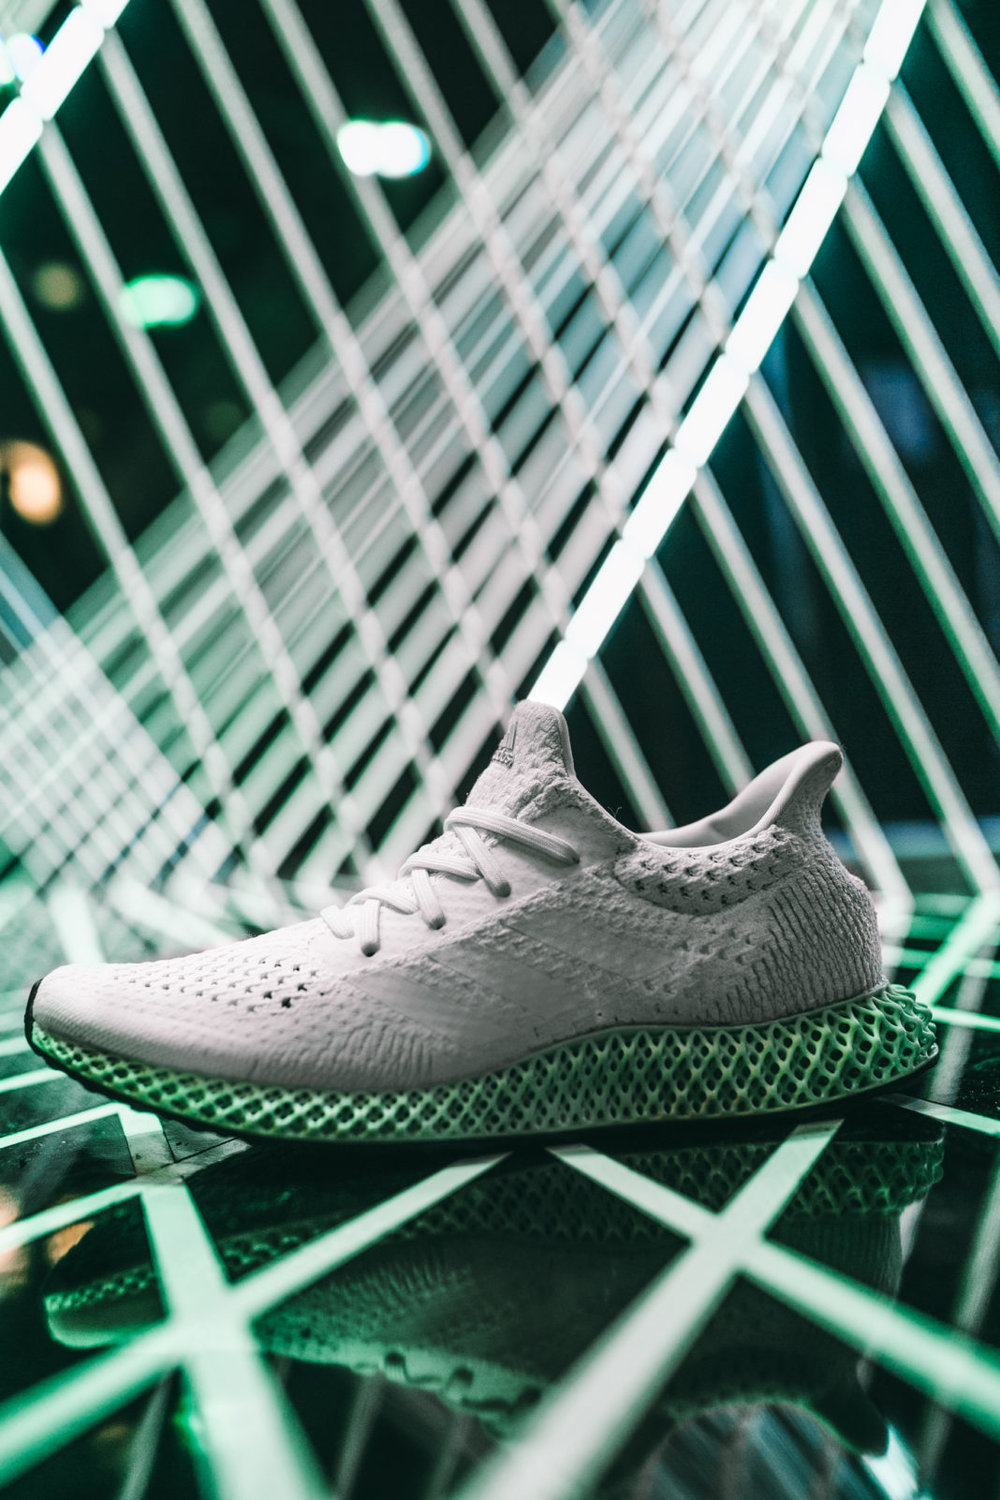 Adidas Futurecraft 4D in All-White,  Photo by  Josh Sobel